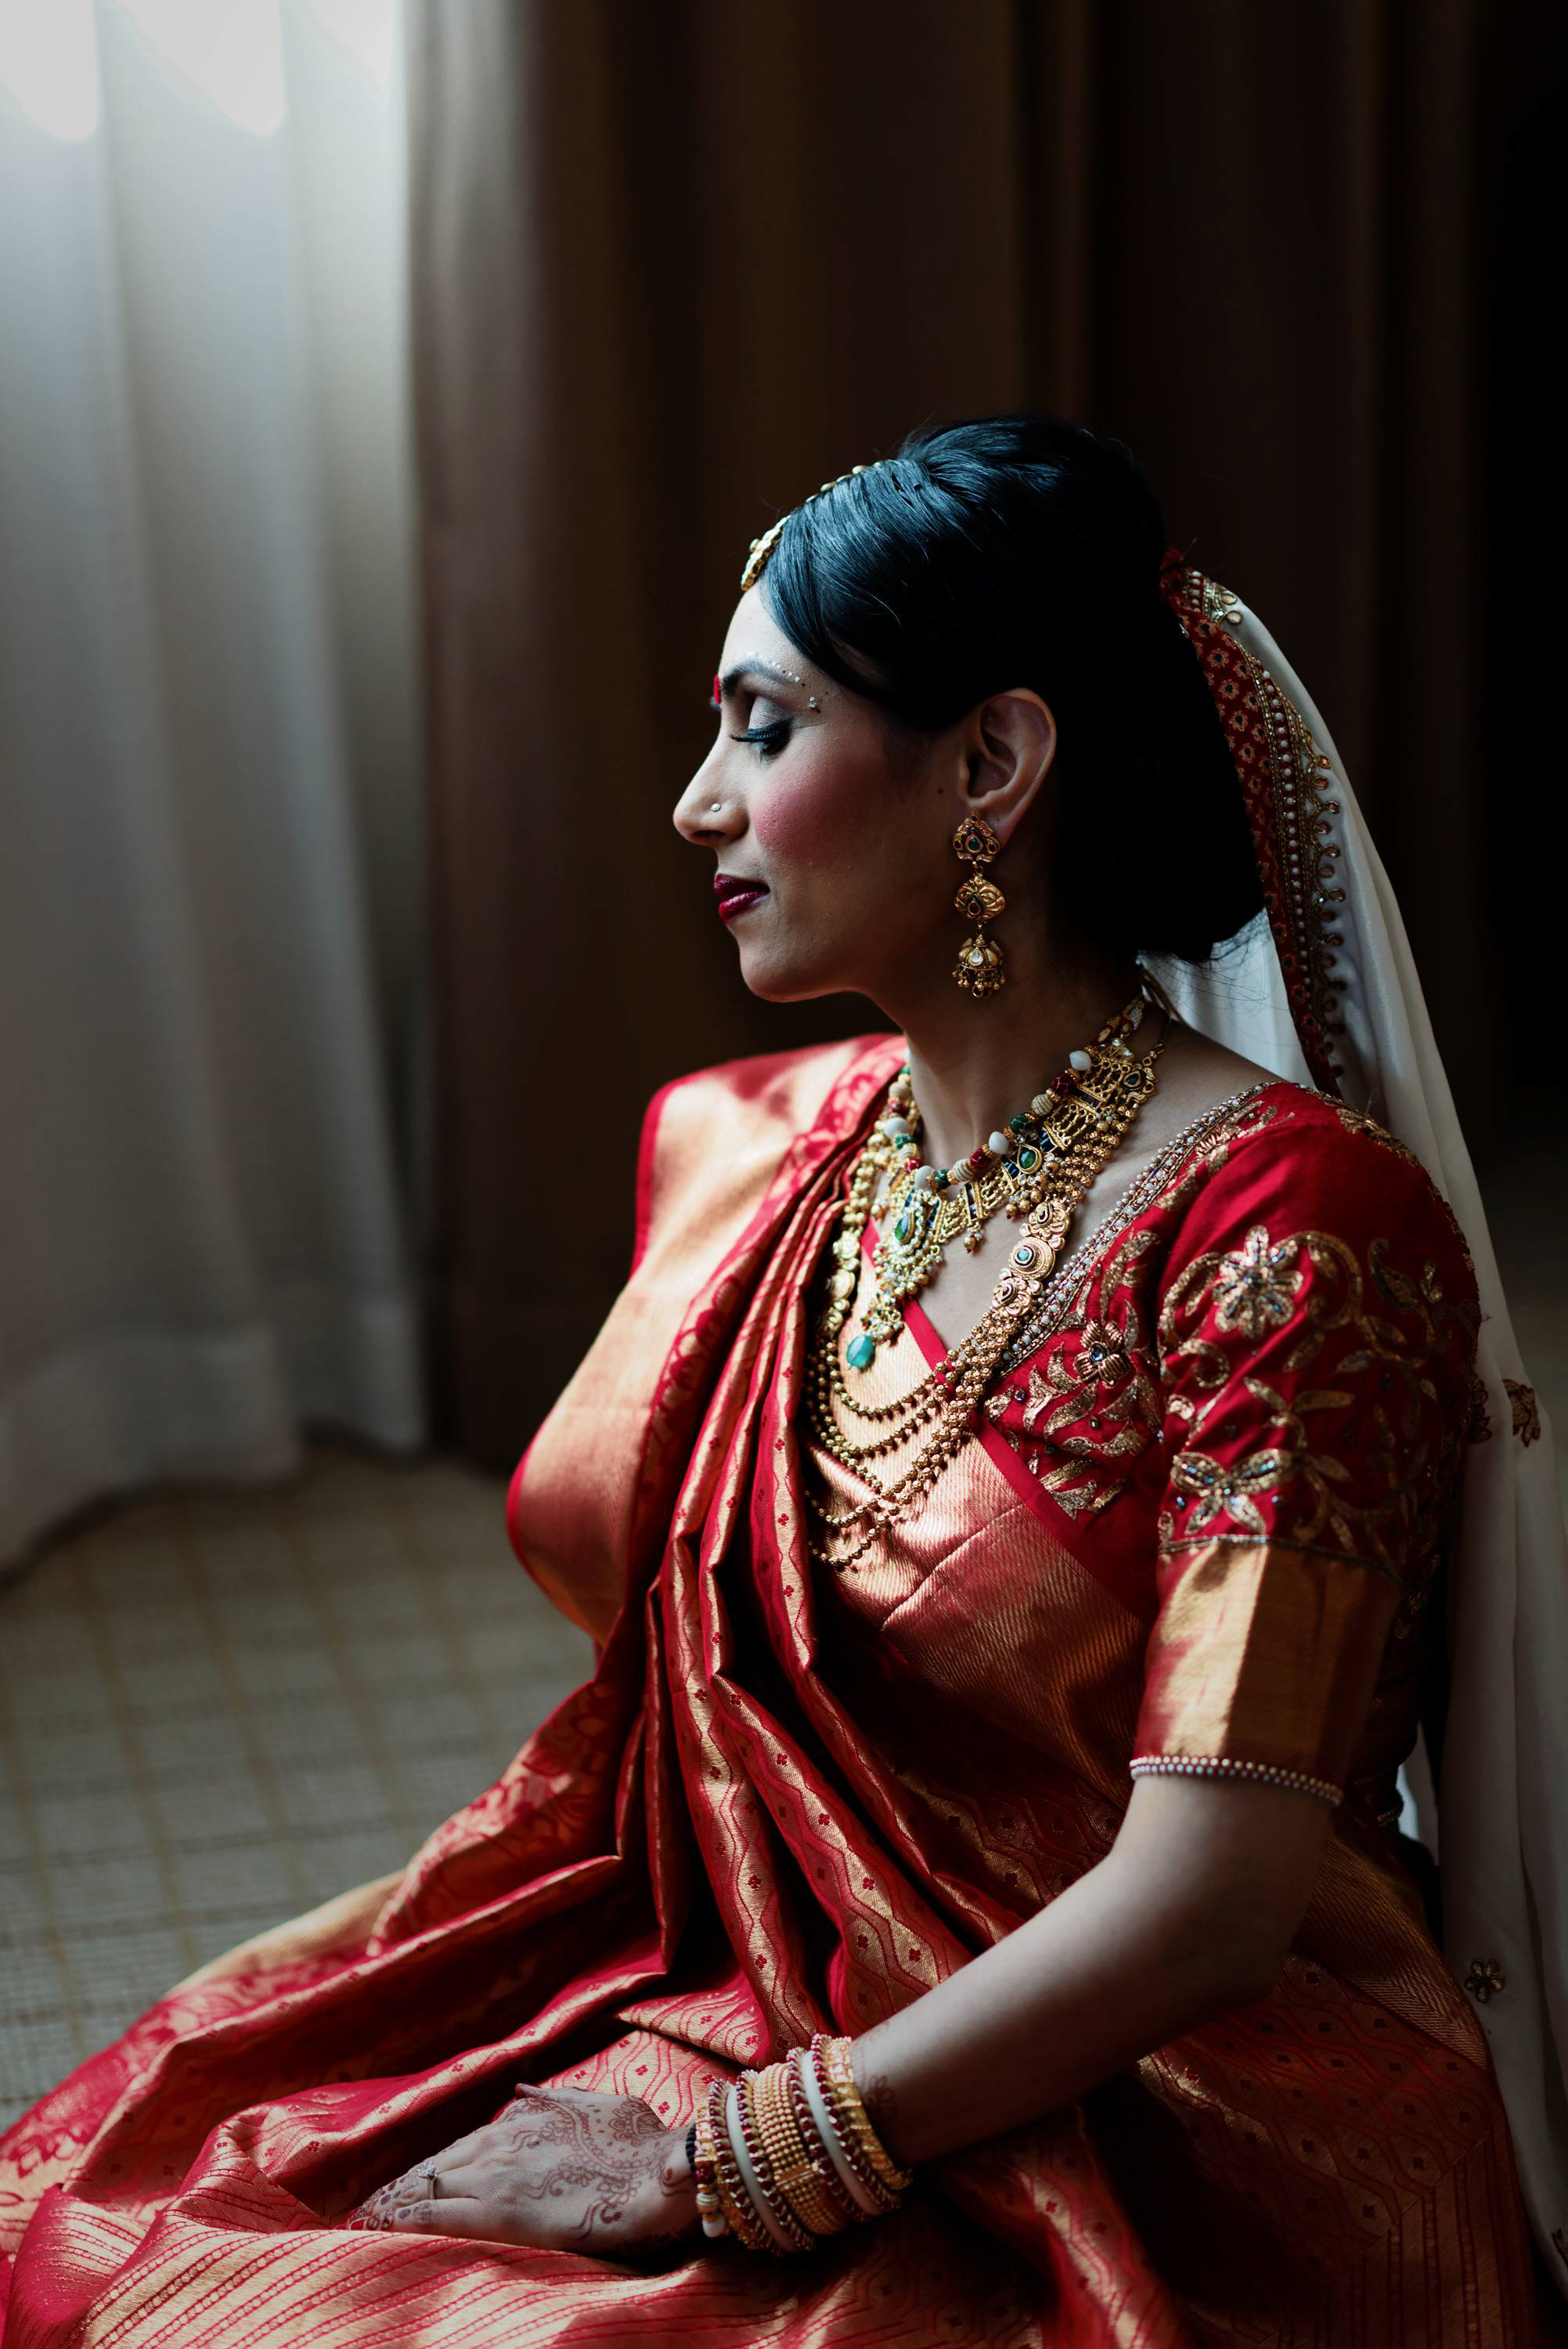 bride looks stunning in her south indian bridal look. Her selection of jewelry, dupatta and Kanjeevaram silk saree complements her overall look entirely. You can't help but adore her!